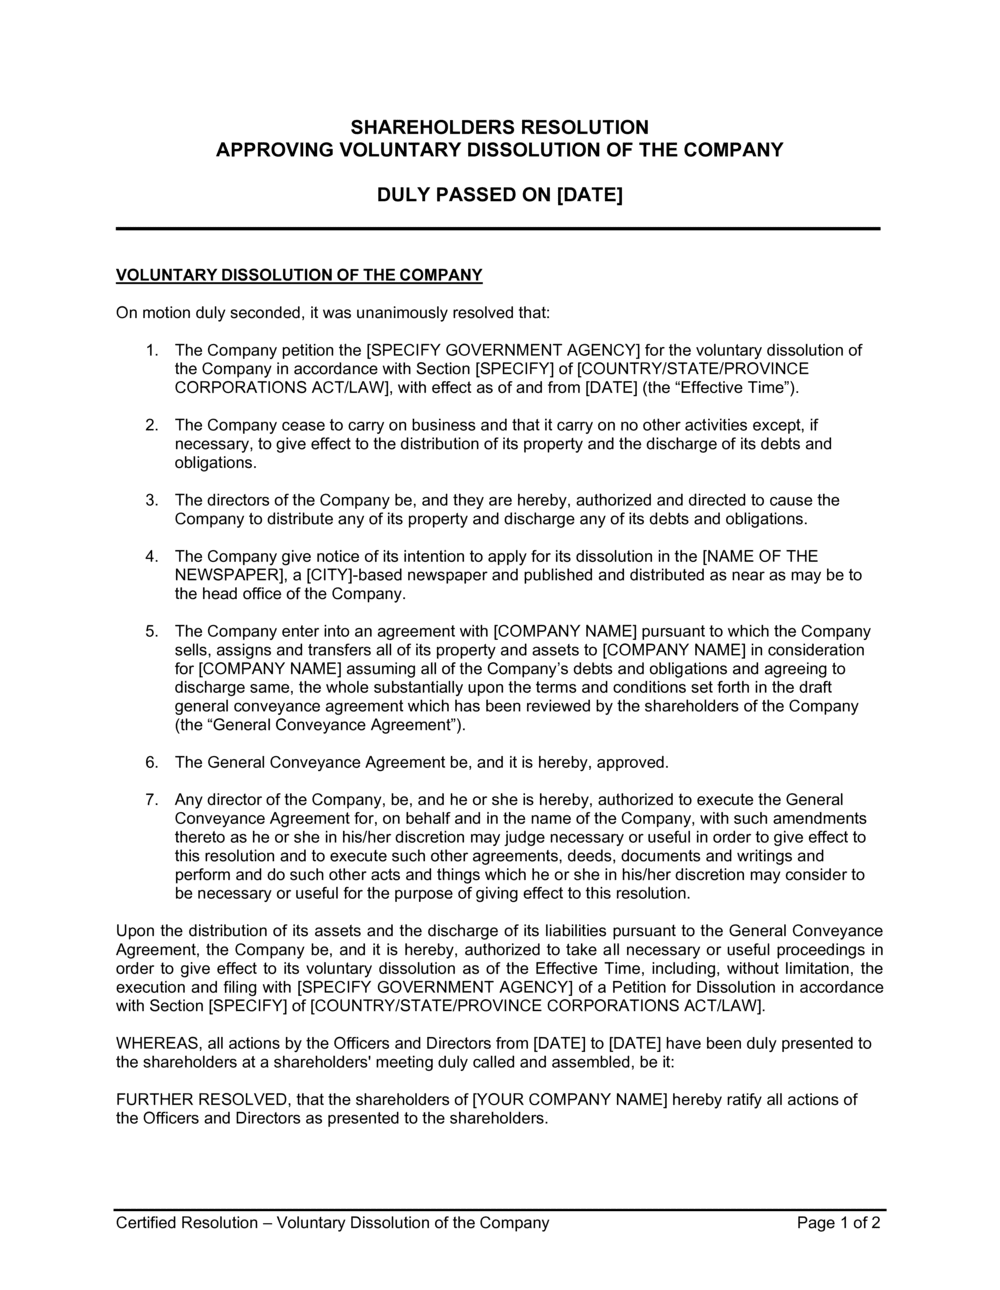 Business-in-a-Box's Shareholders Resolution Approving Voluntary Dissolution of the Company Template